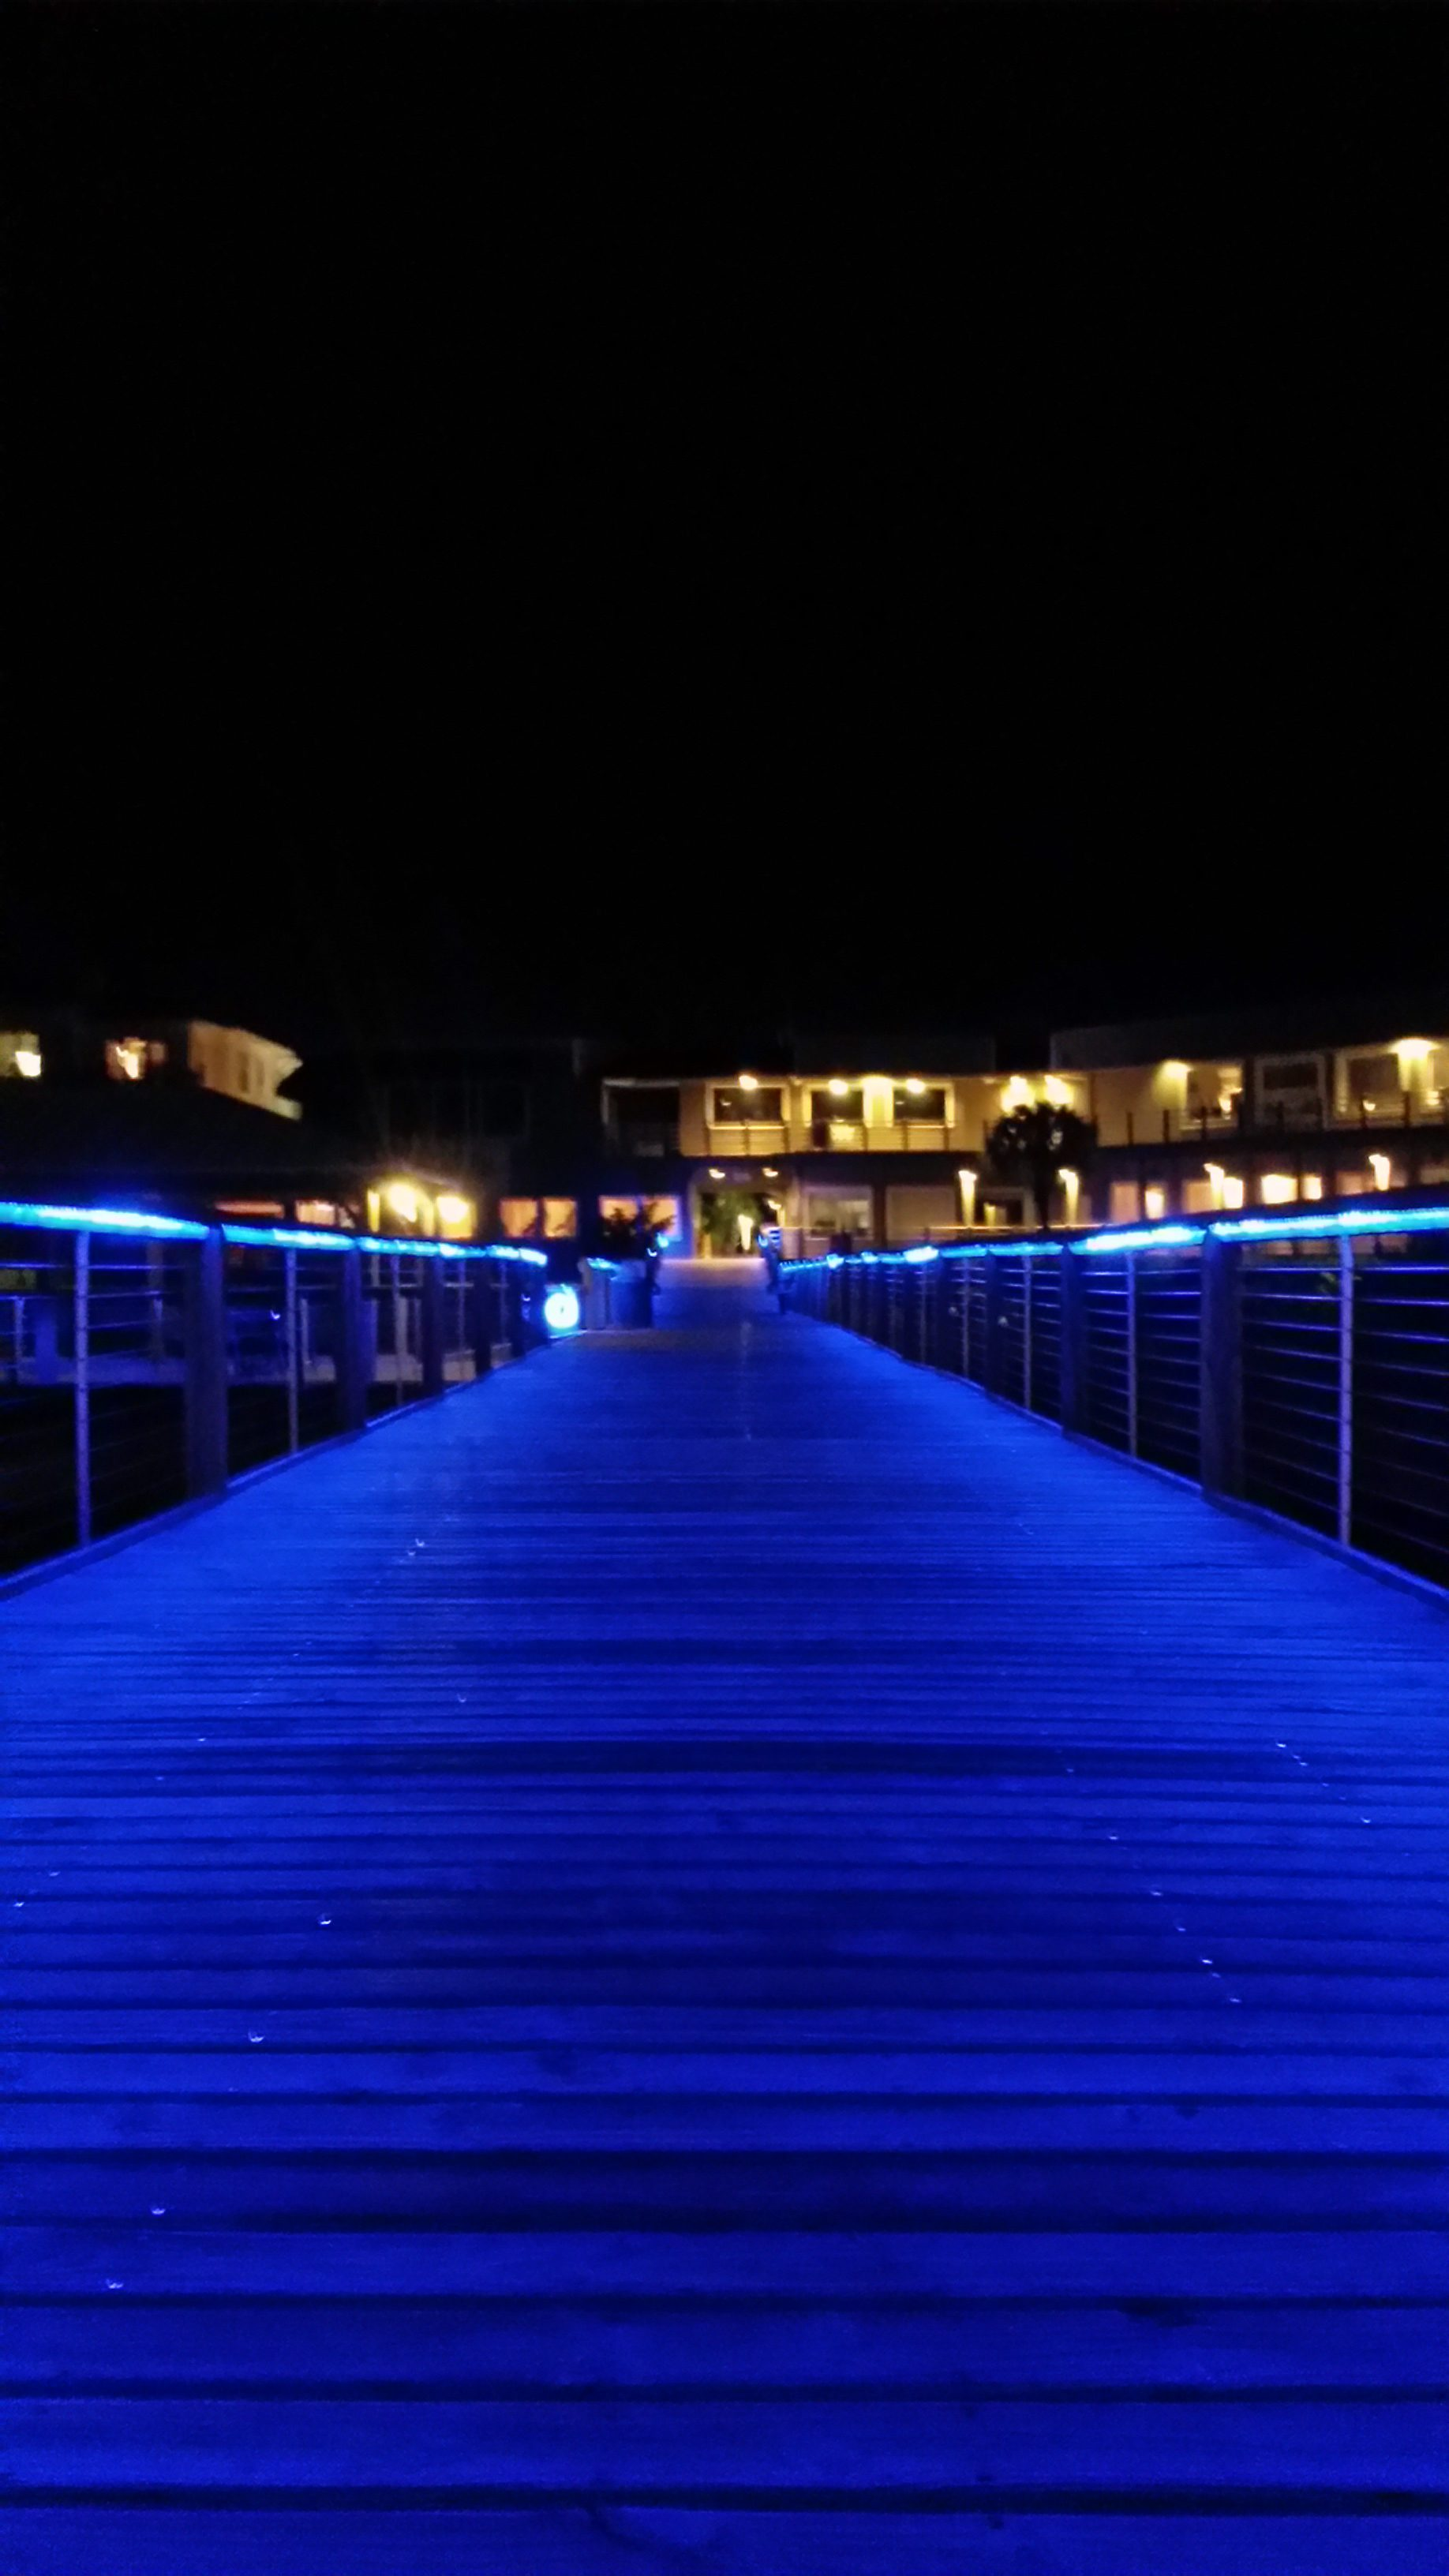 Lighted boardwalk